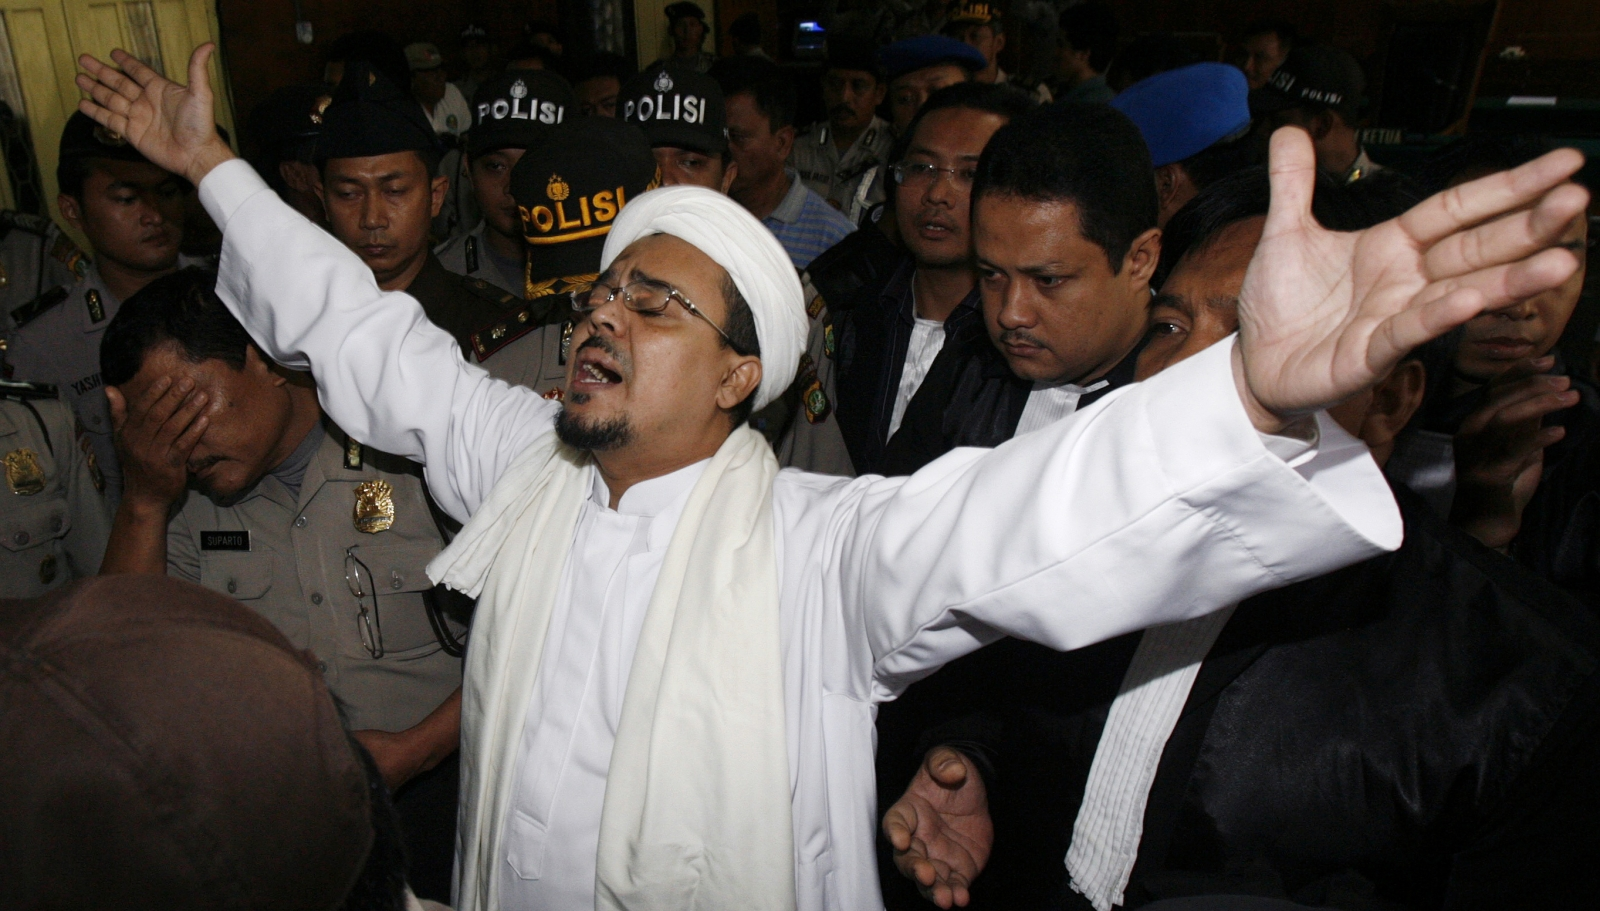 Indonesia names hardline cleric a suspect in pornography case